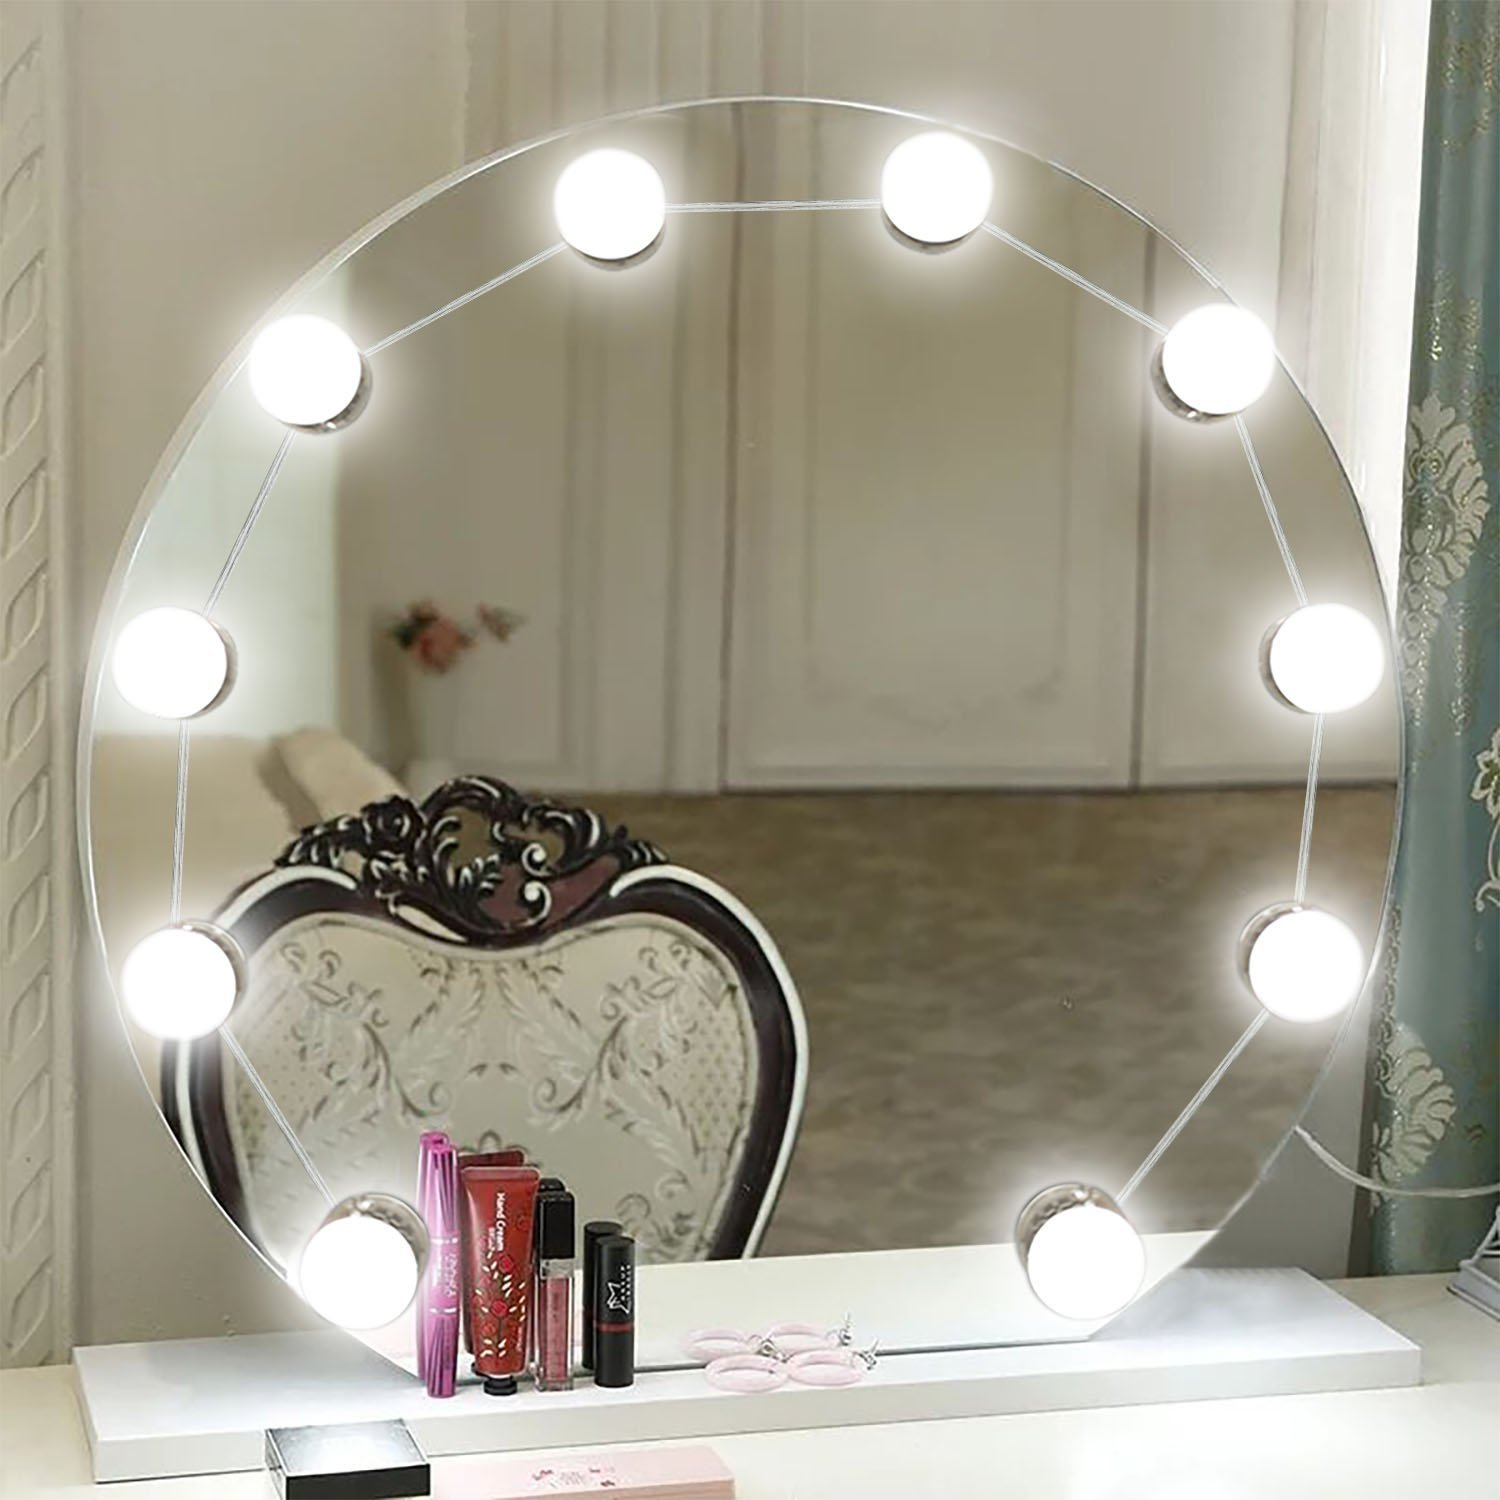 Azornic LED Makeup Vanity Mirror Lights Kit USB Power Supply Lighting Fixture Strip with 10 Dimmable Bulbs for Dressing, Cosmetic, Bathroom, Mirror Not Included